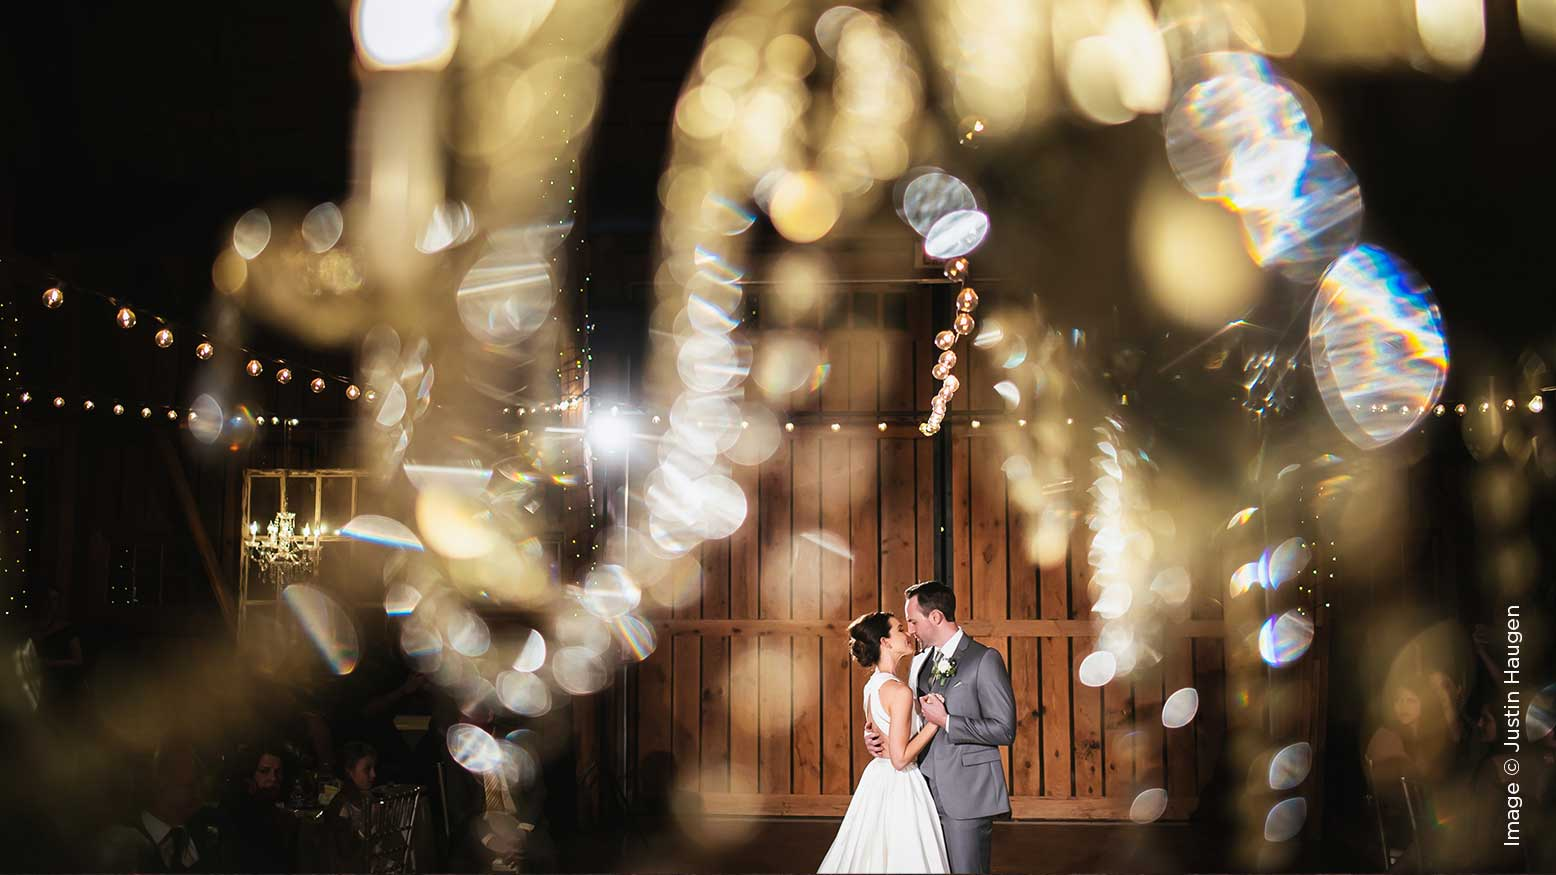 5 Ways to Use Off-Camera Light on a Wedding Day